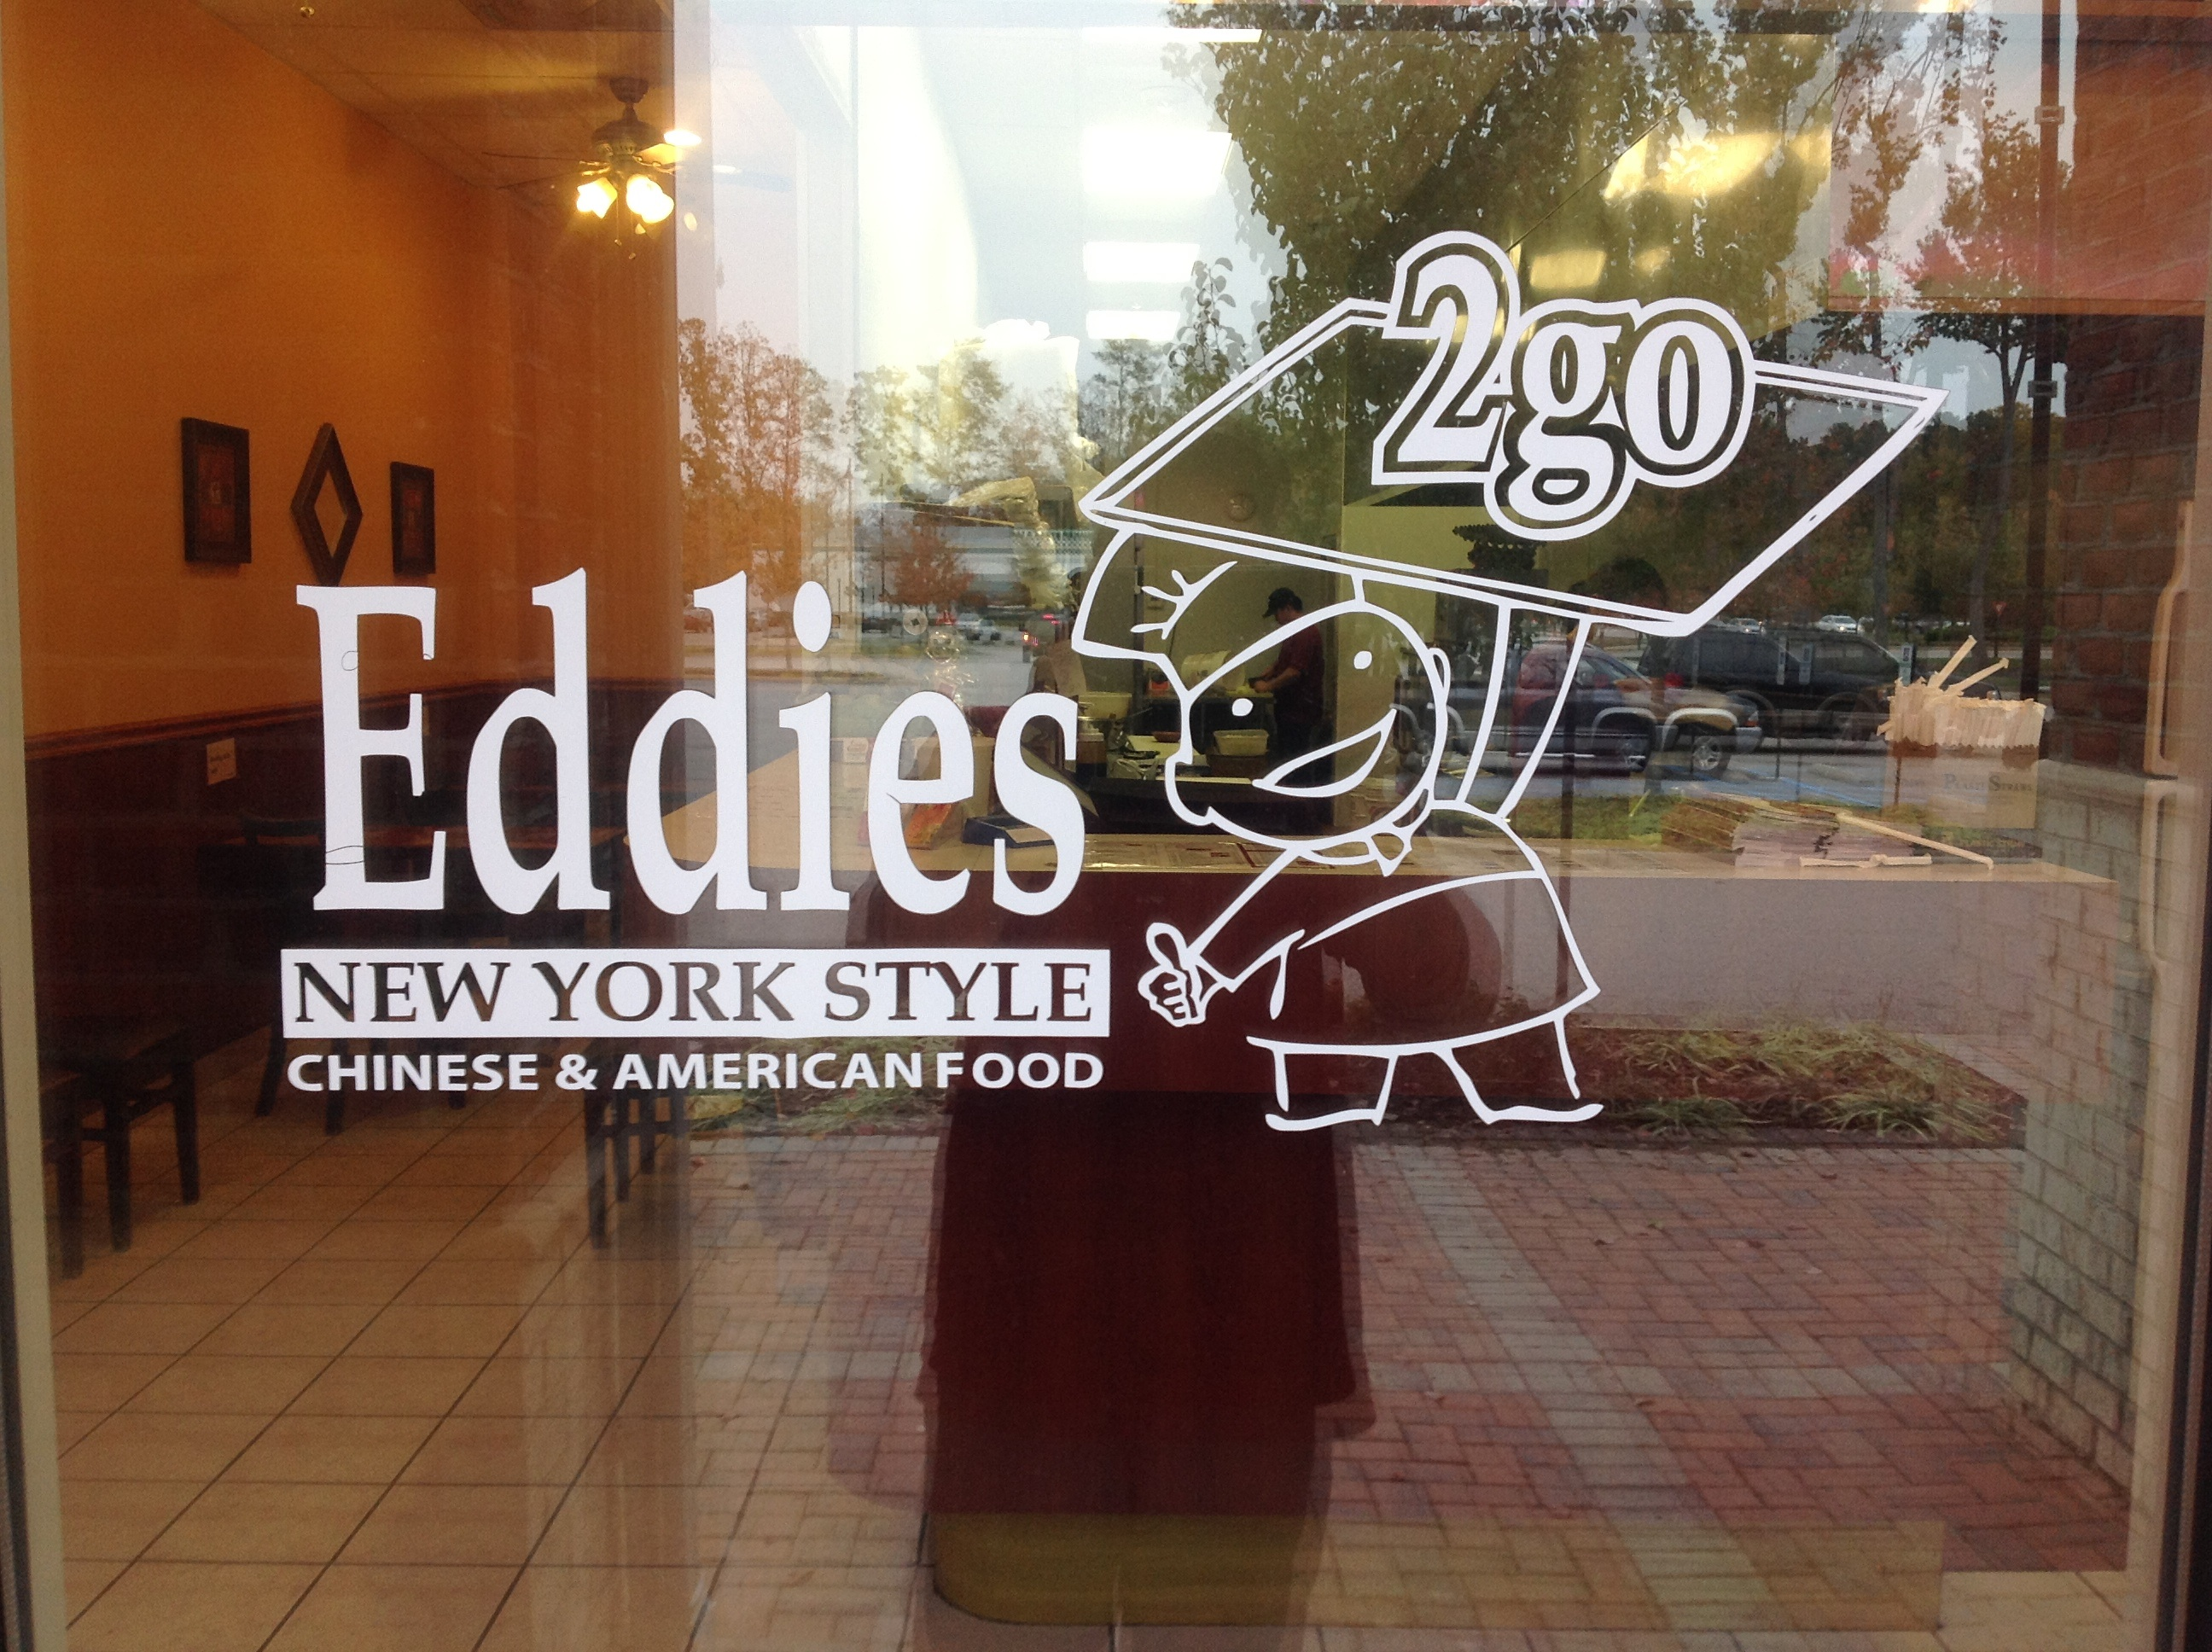 Eddies2go restaurant